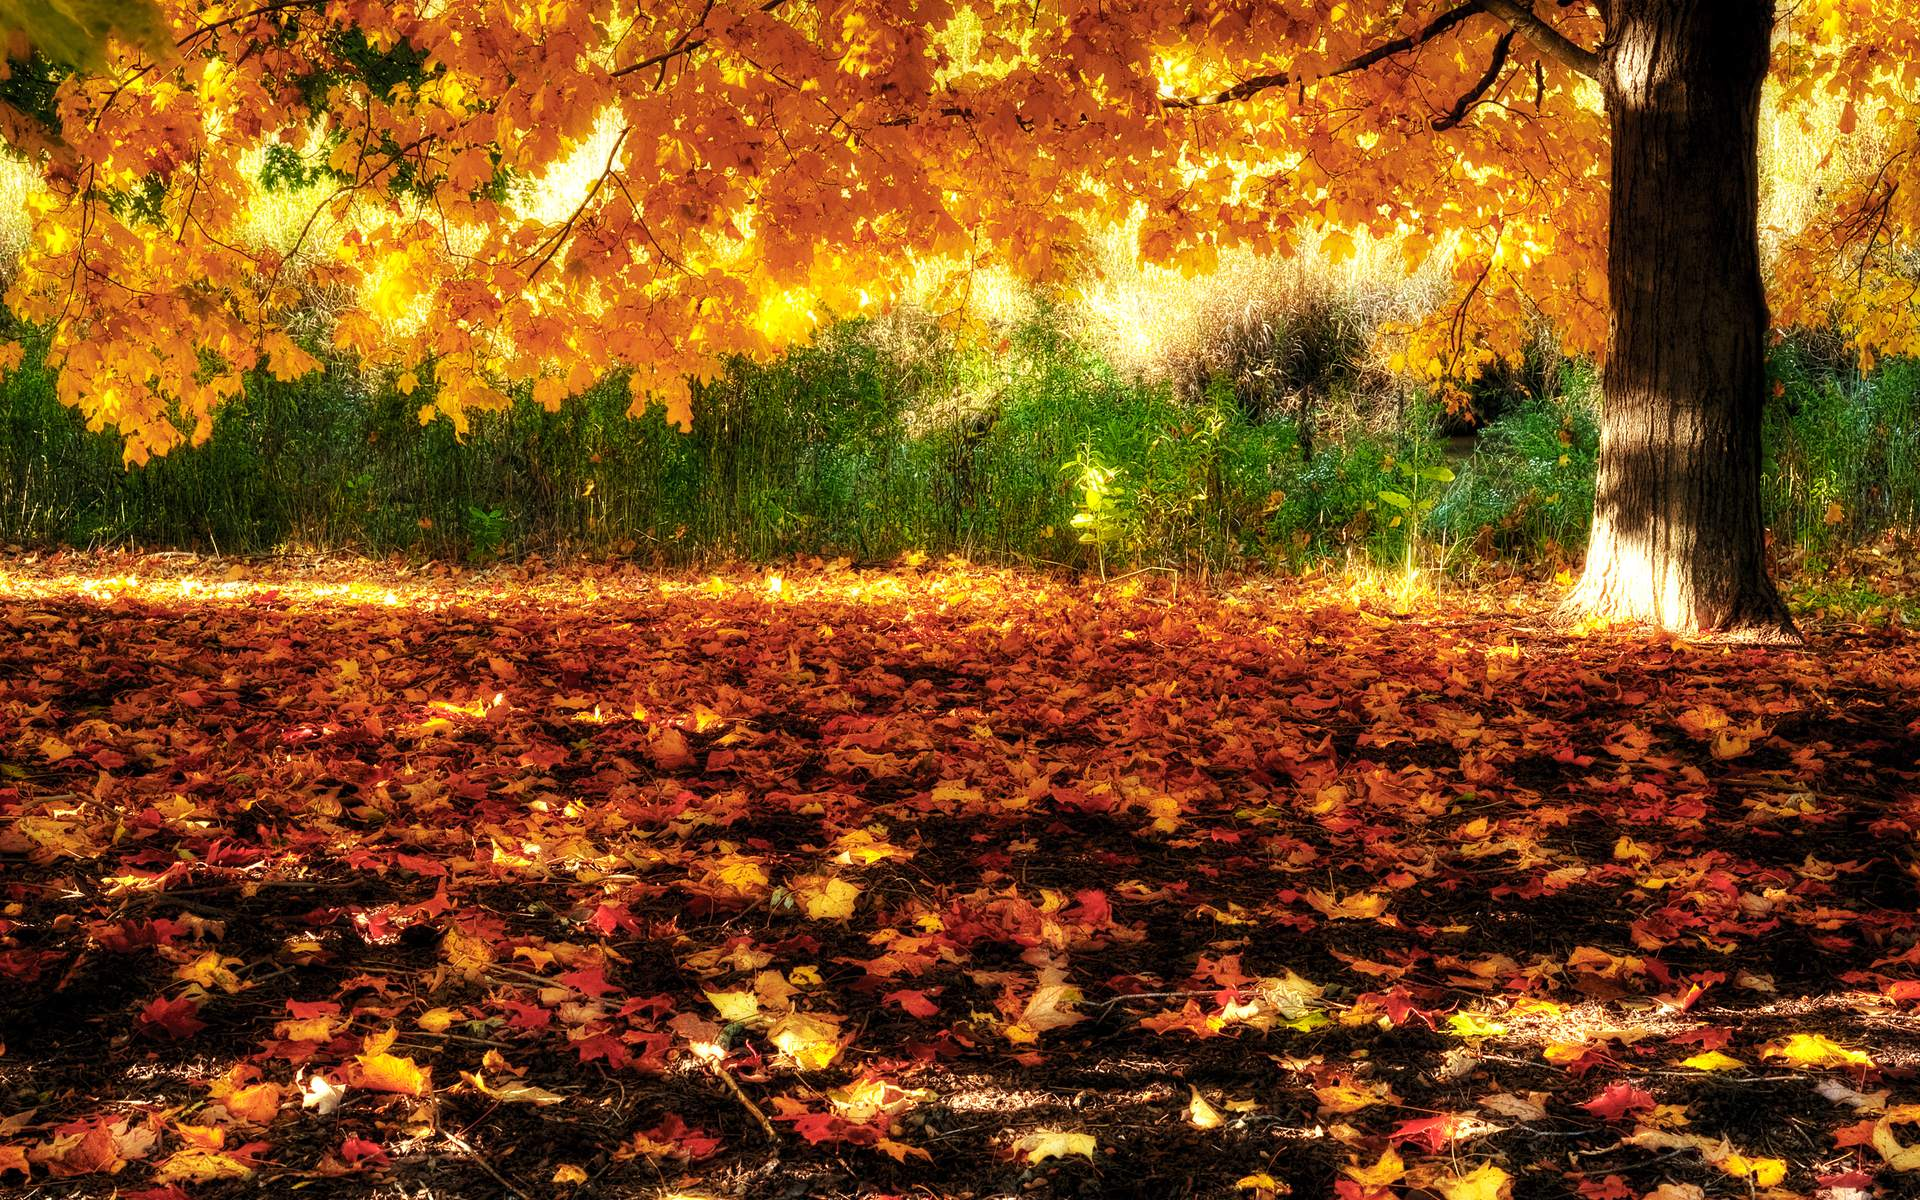 High Resolution Fall Wallpaper: Fall Autumn Wallpapers